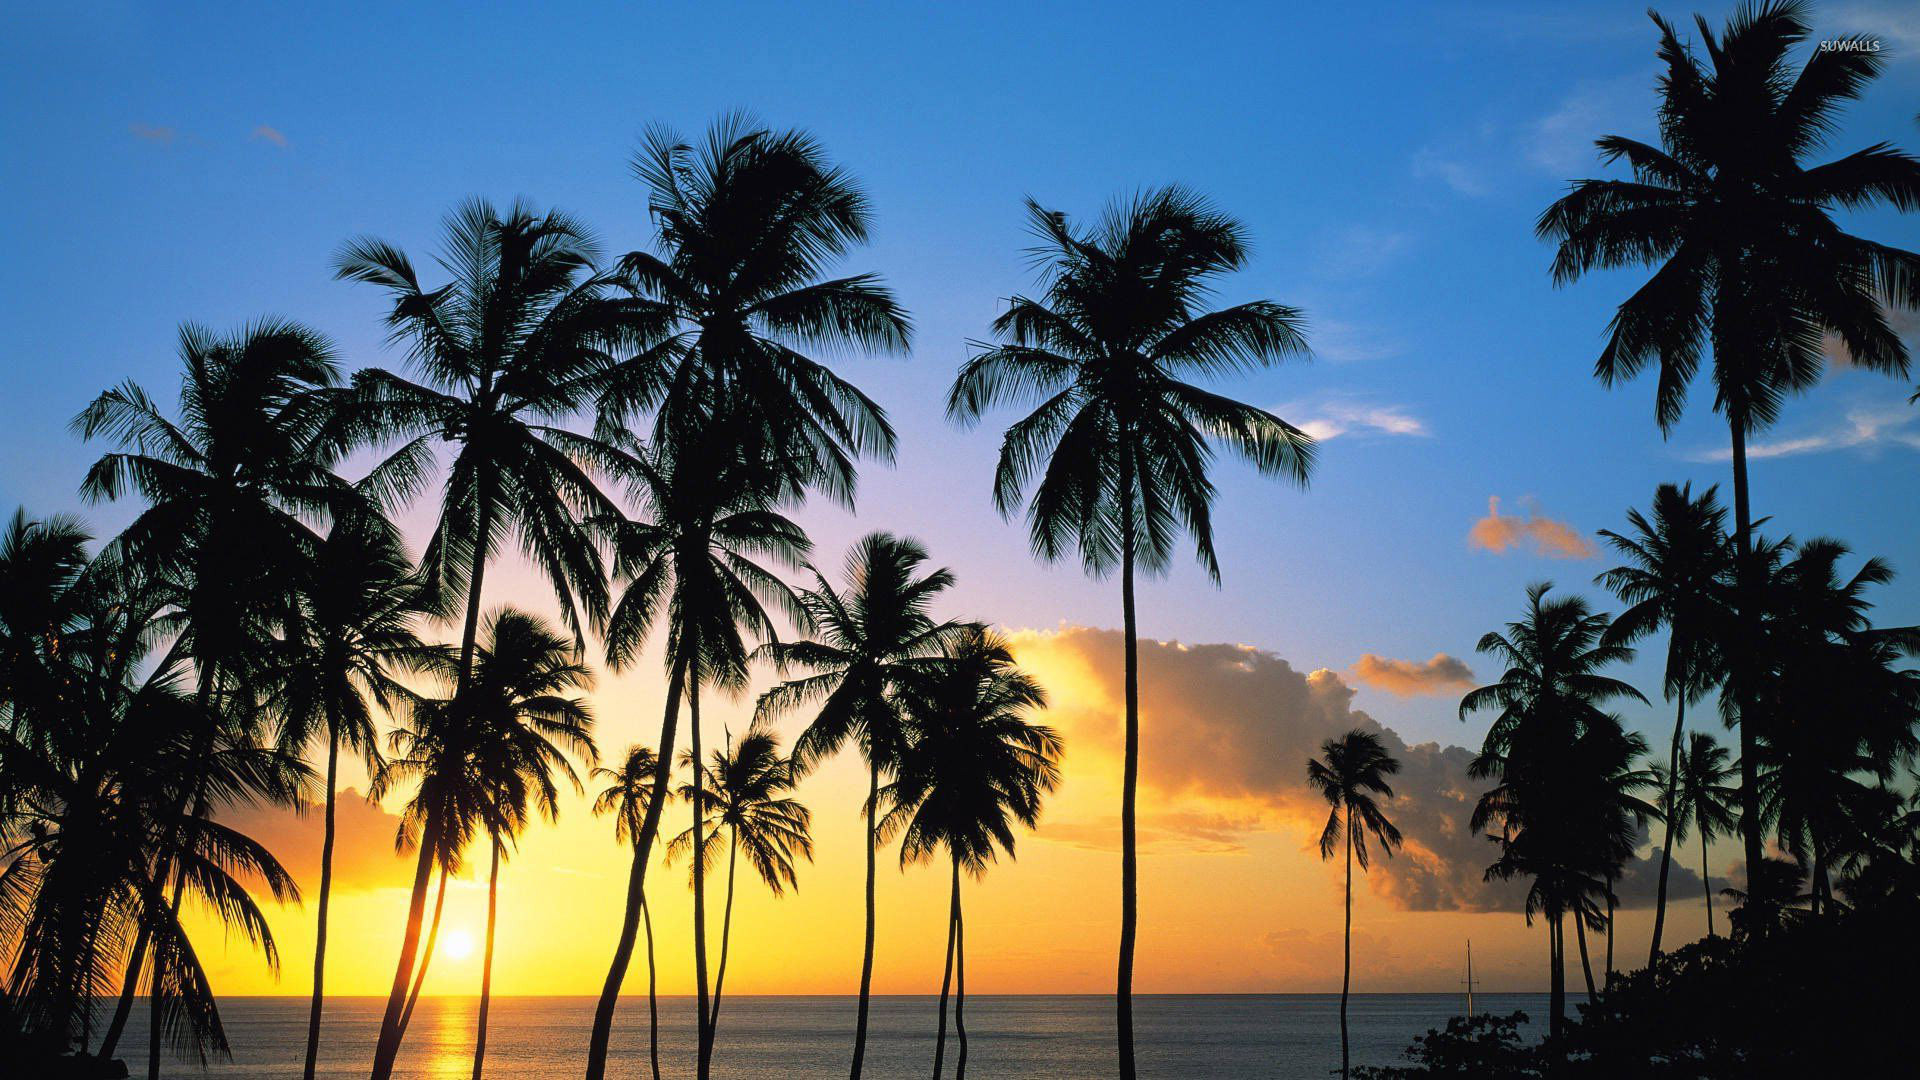 palm tree silhouettes in the sunset wallpaper beach